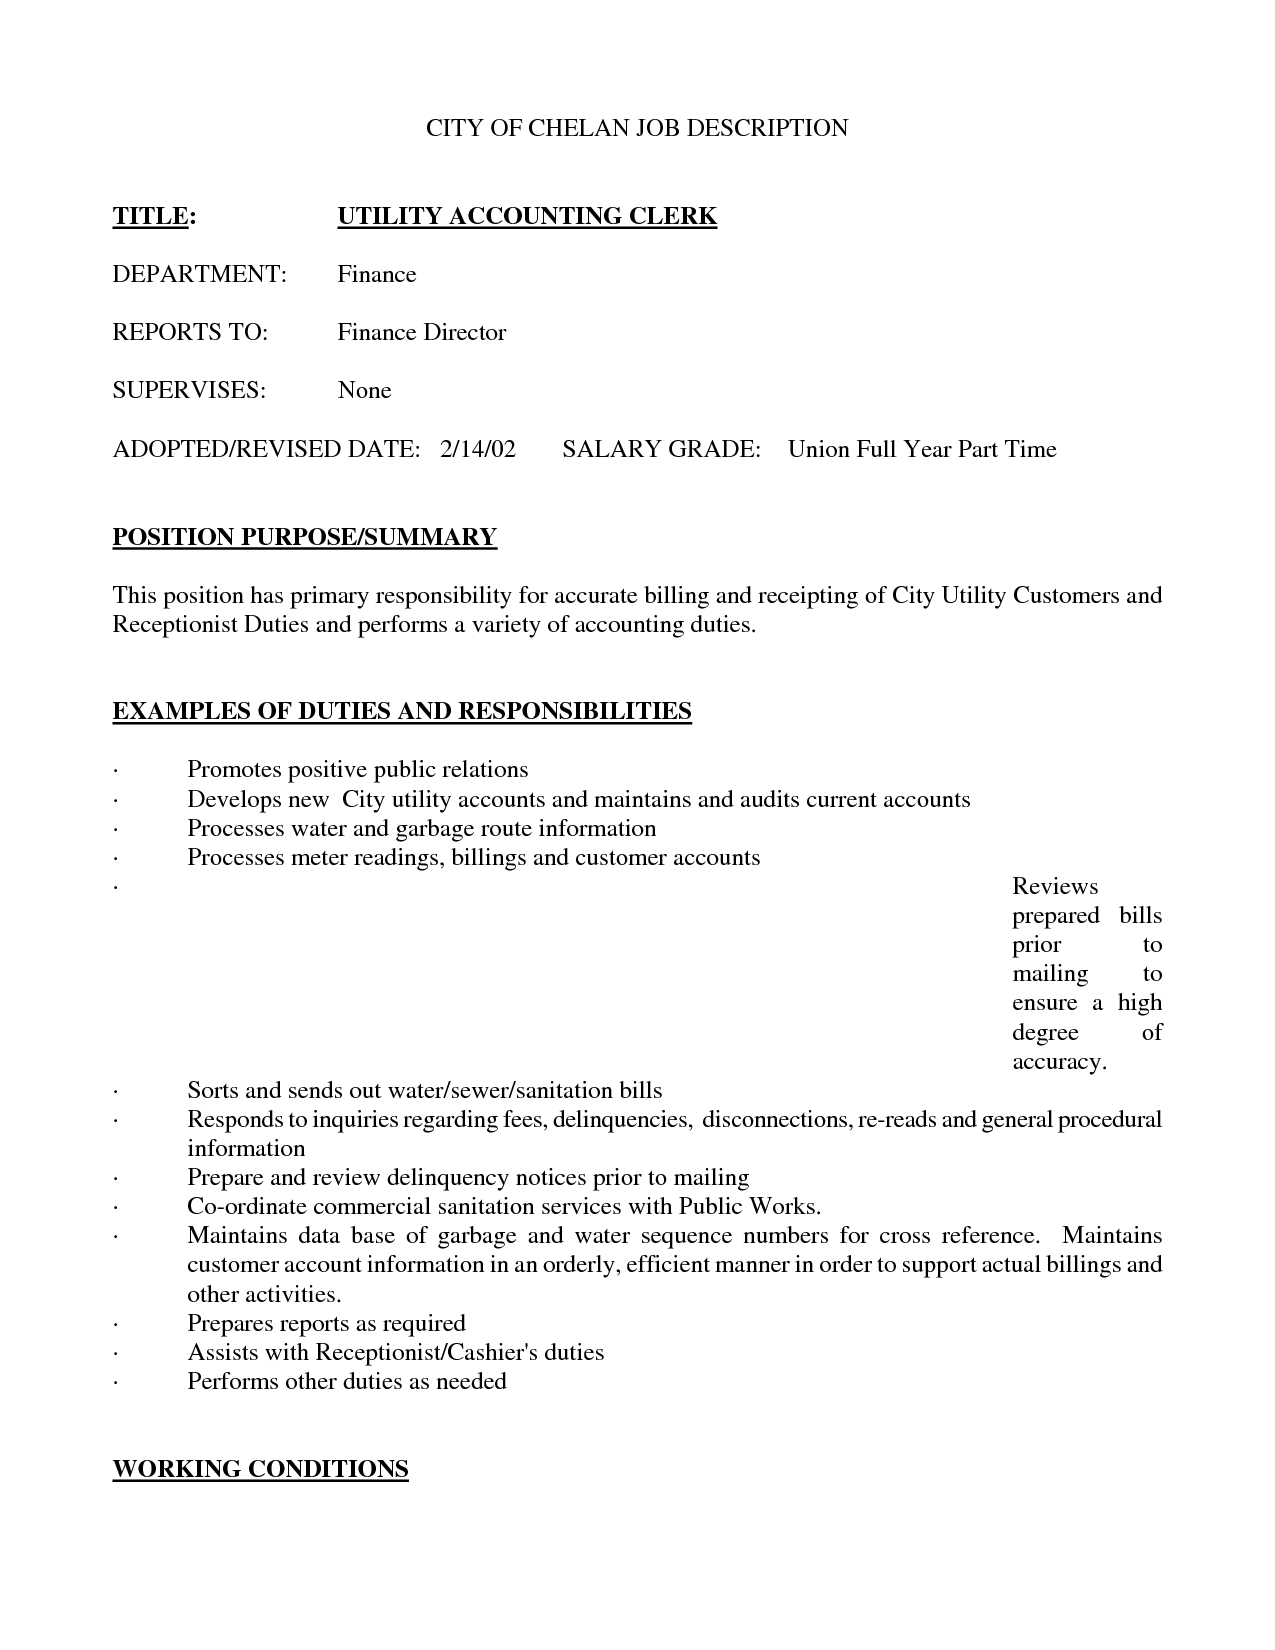 Sample Resume Gallery Of Title accounting Clerk job Resume